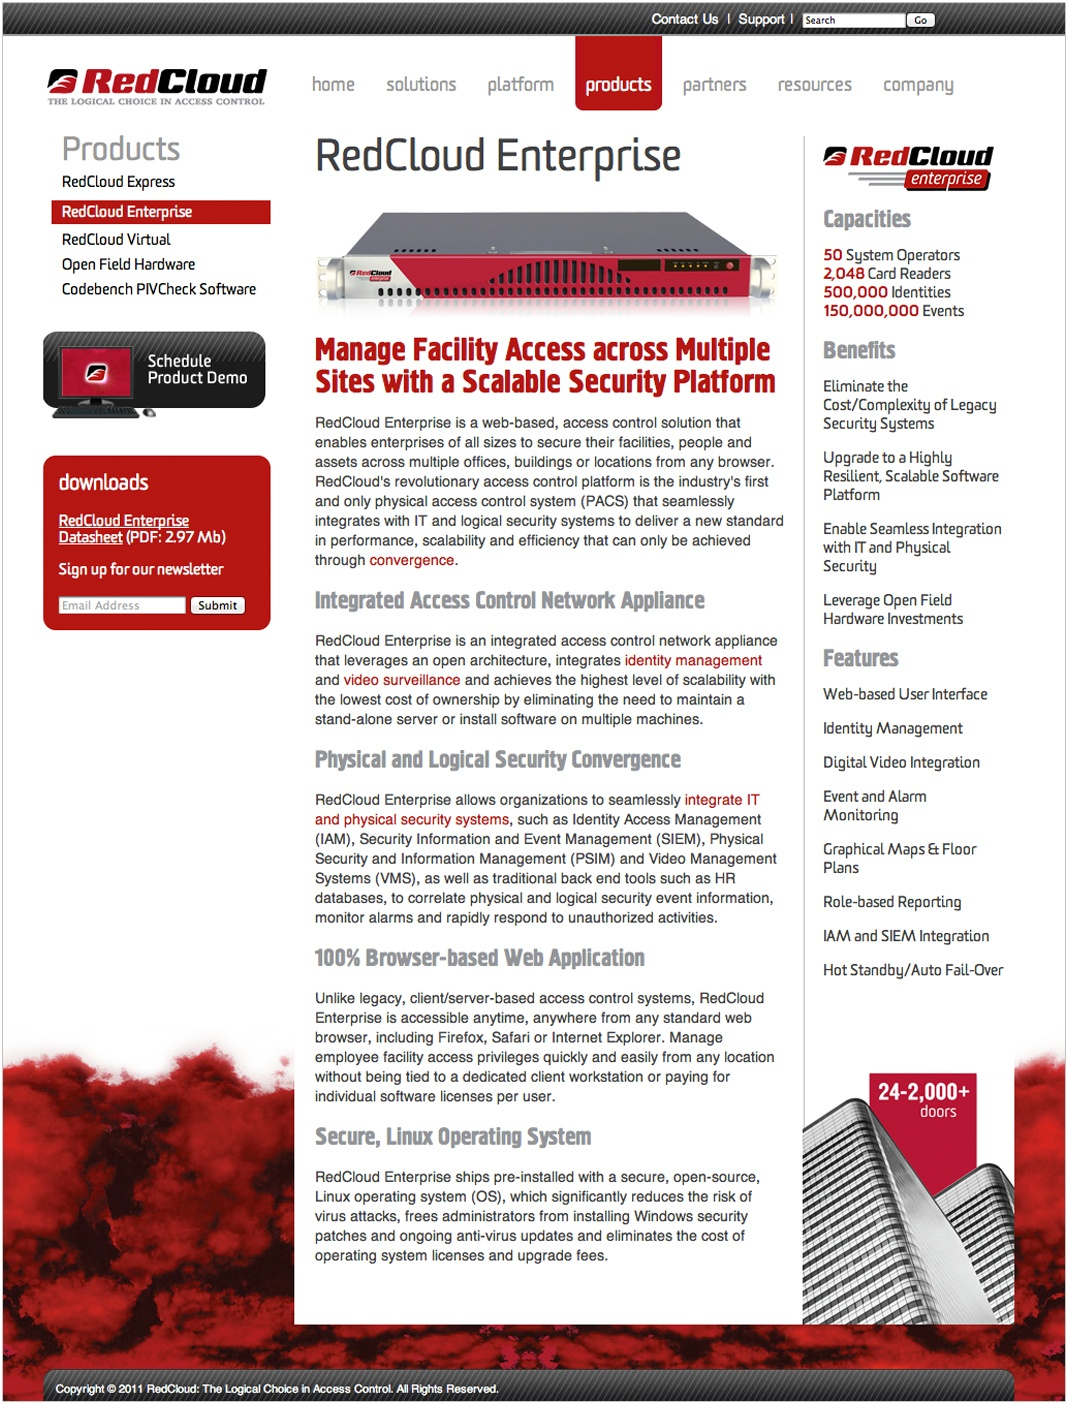 RedCloud Website Product Page